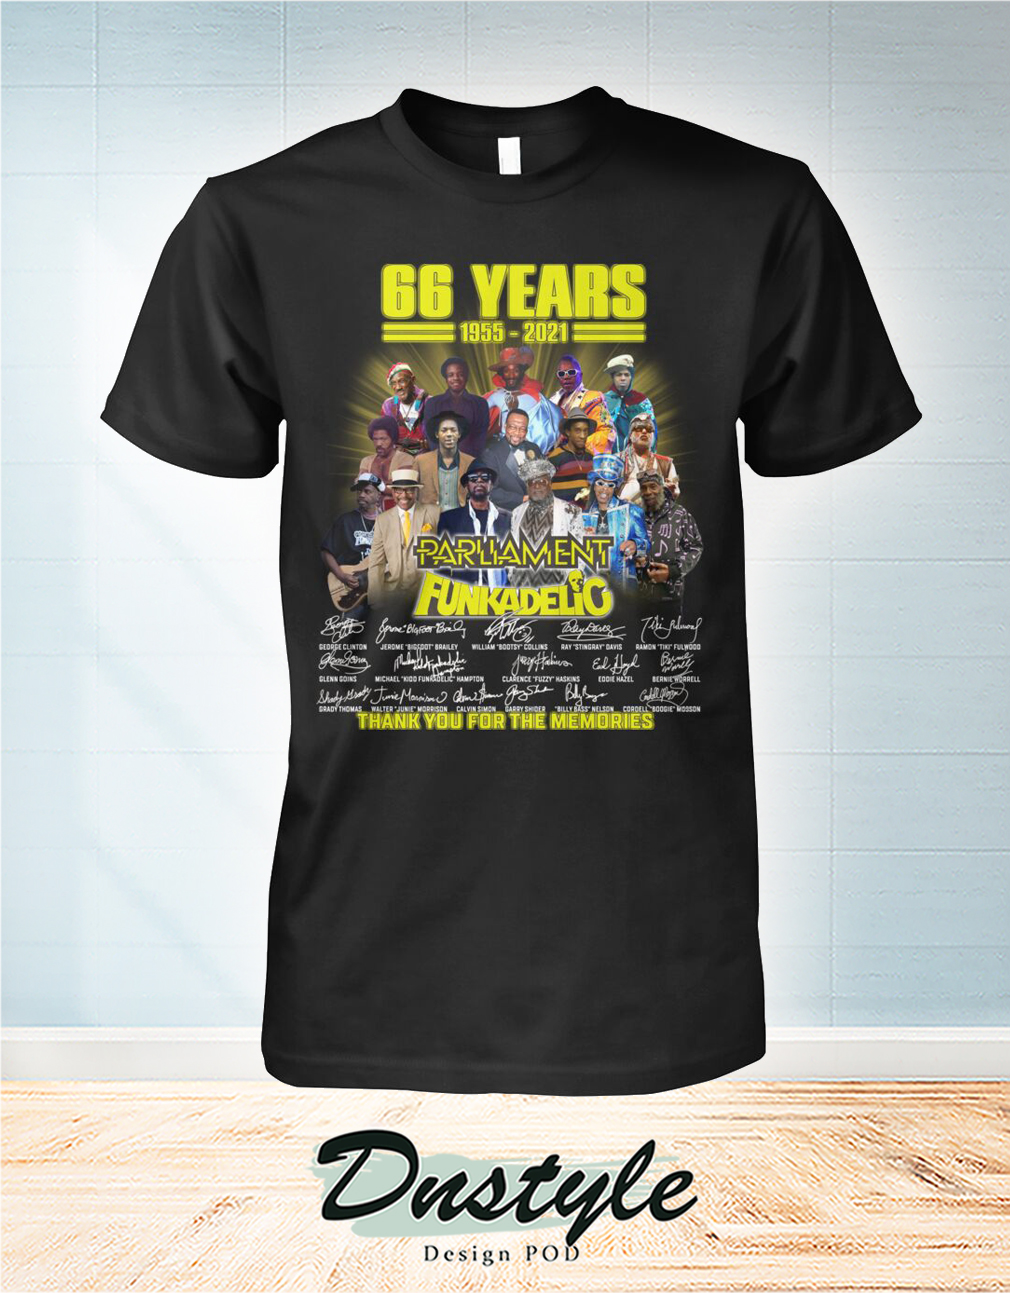 66 years parliament funkadelic thank you for the memories shirt